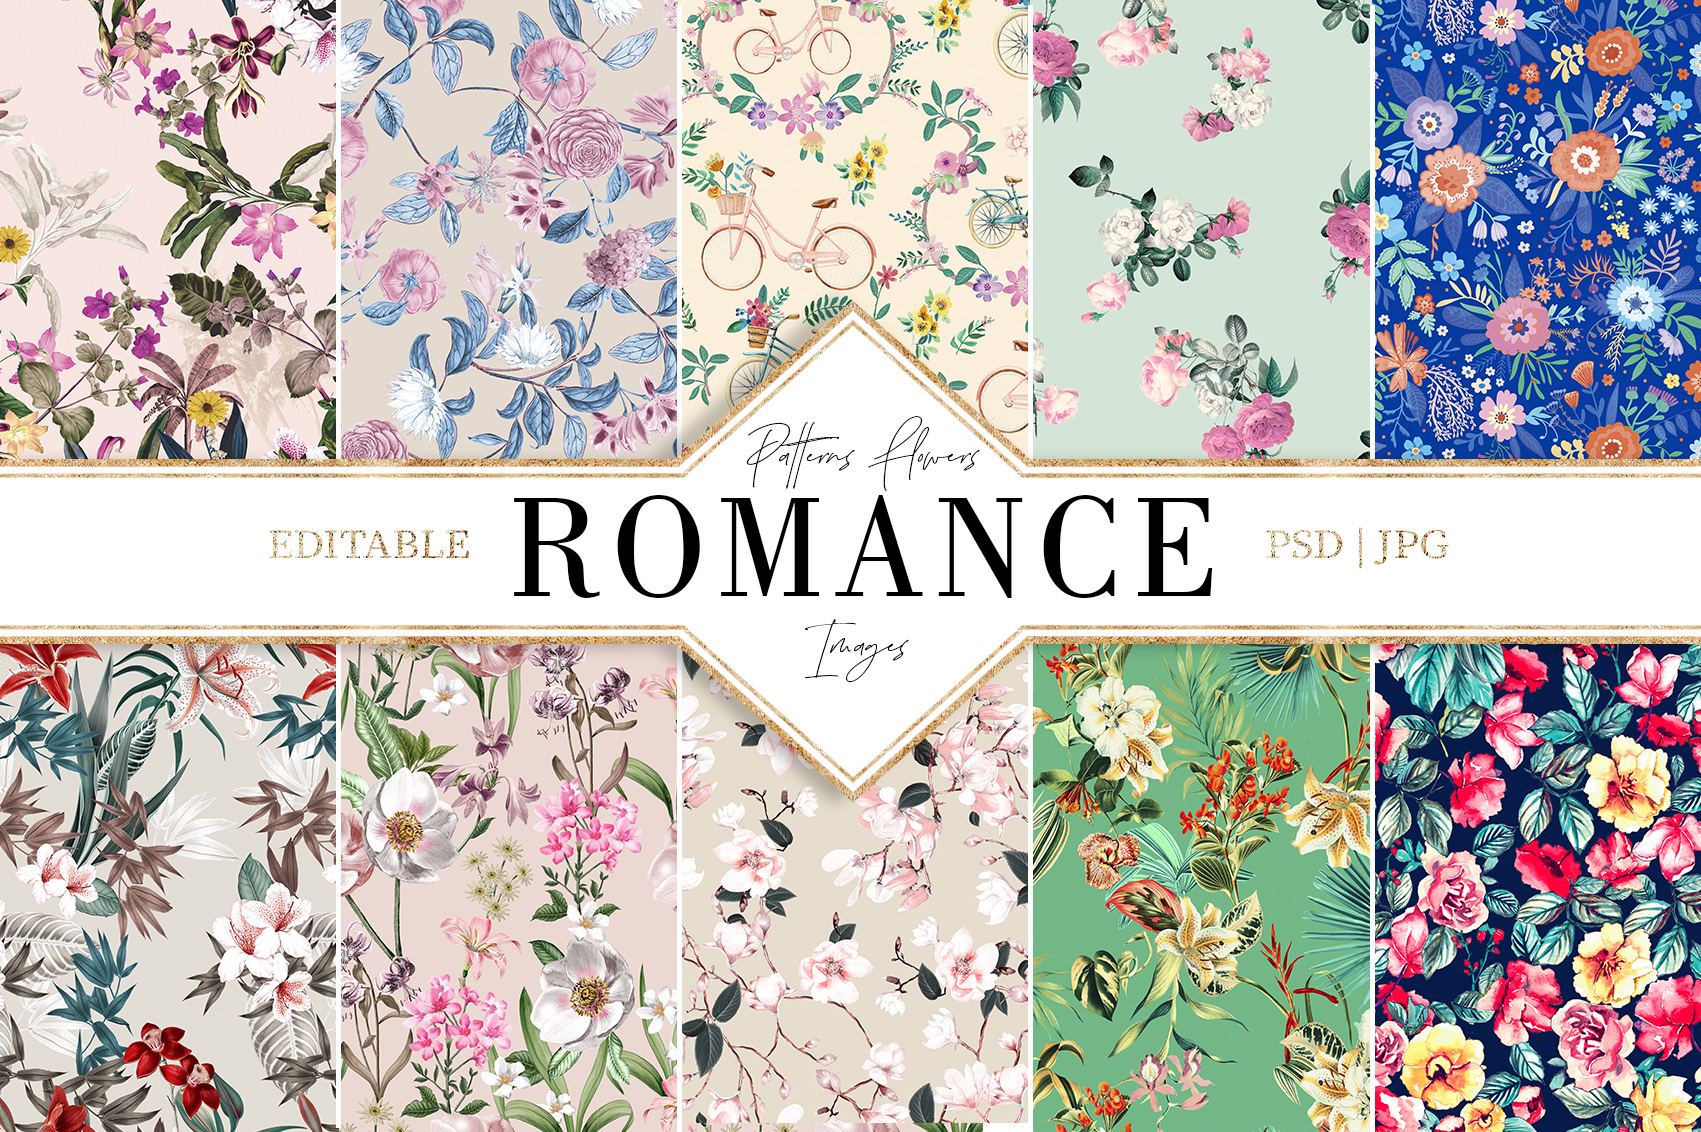 Romance|Flowers Patterns clipArt example image 1